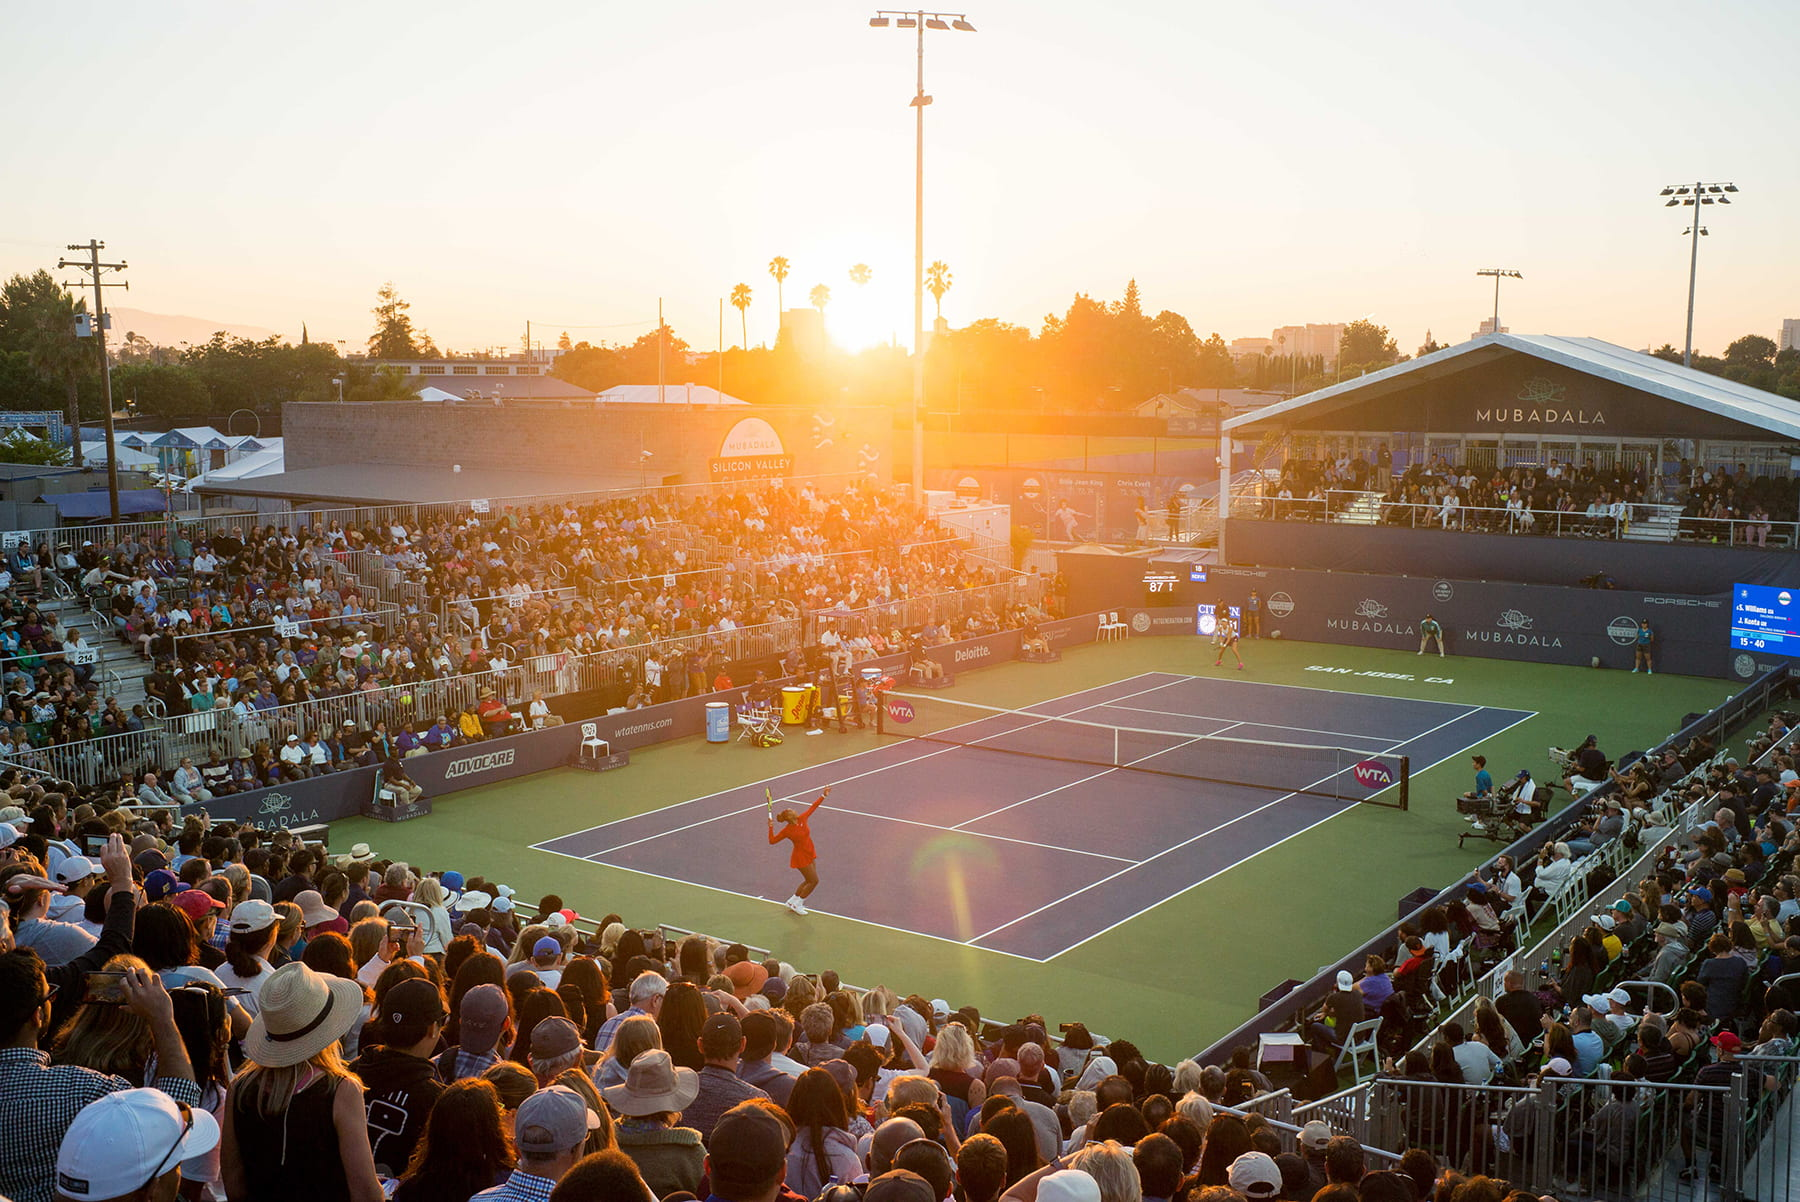 The Mubadala Silicon Valley Classic takes place at the new tennis courts at Spartan Stadium in San Jose, Calif. on Tuesday, July 31, 2018. (Photo: James Tensuan, '15 Journalism)